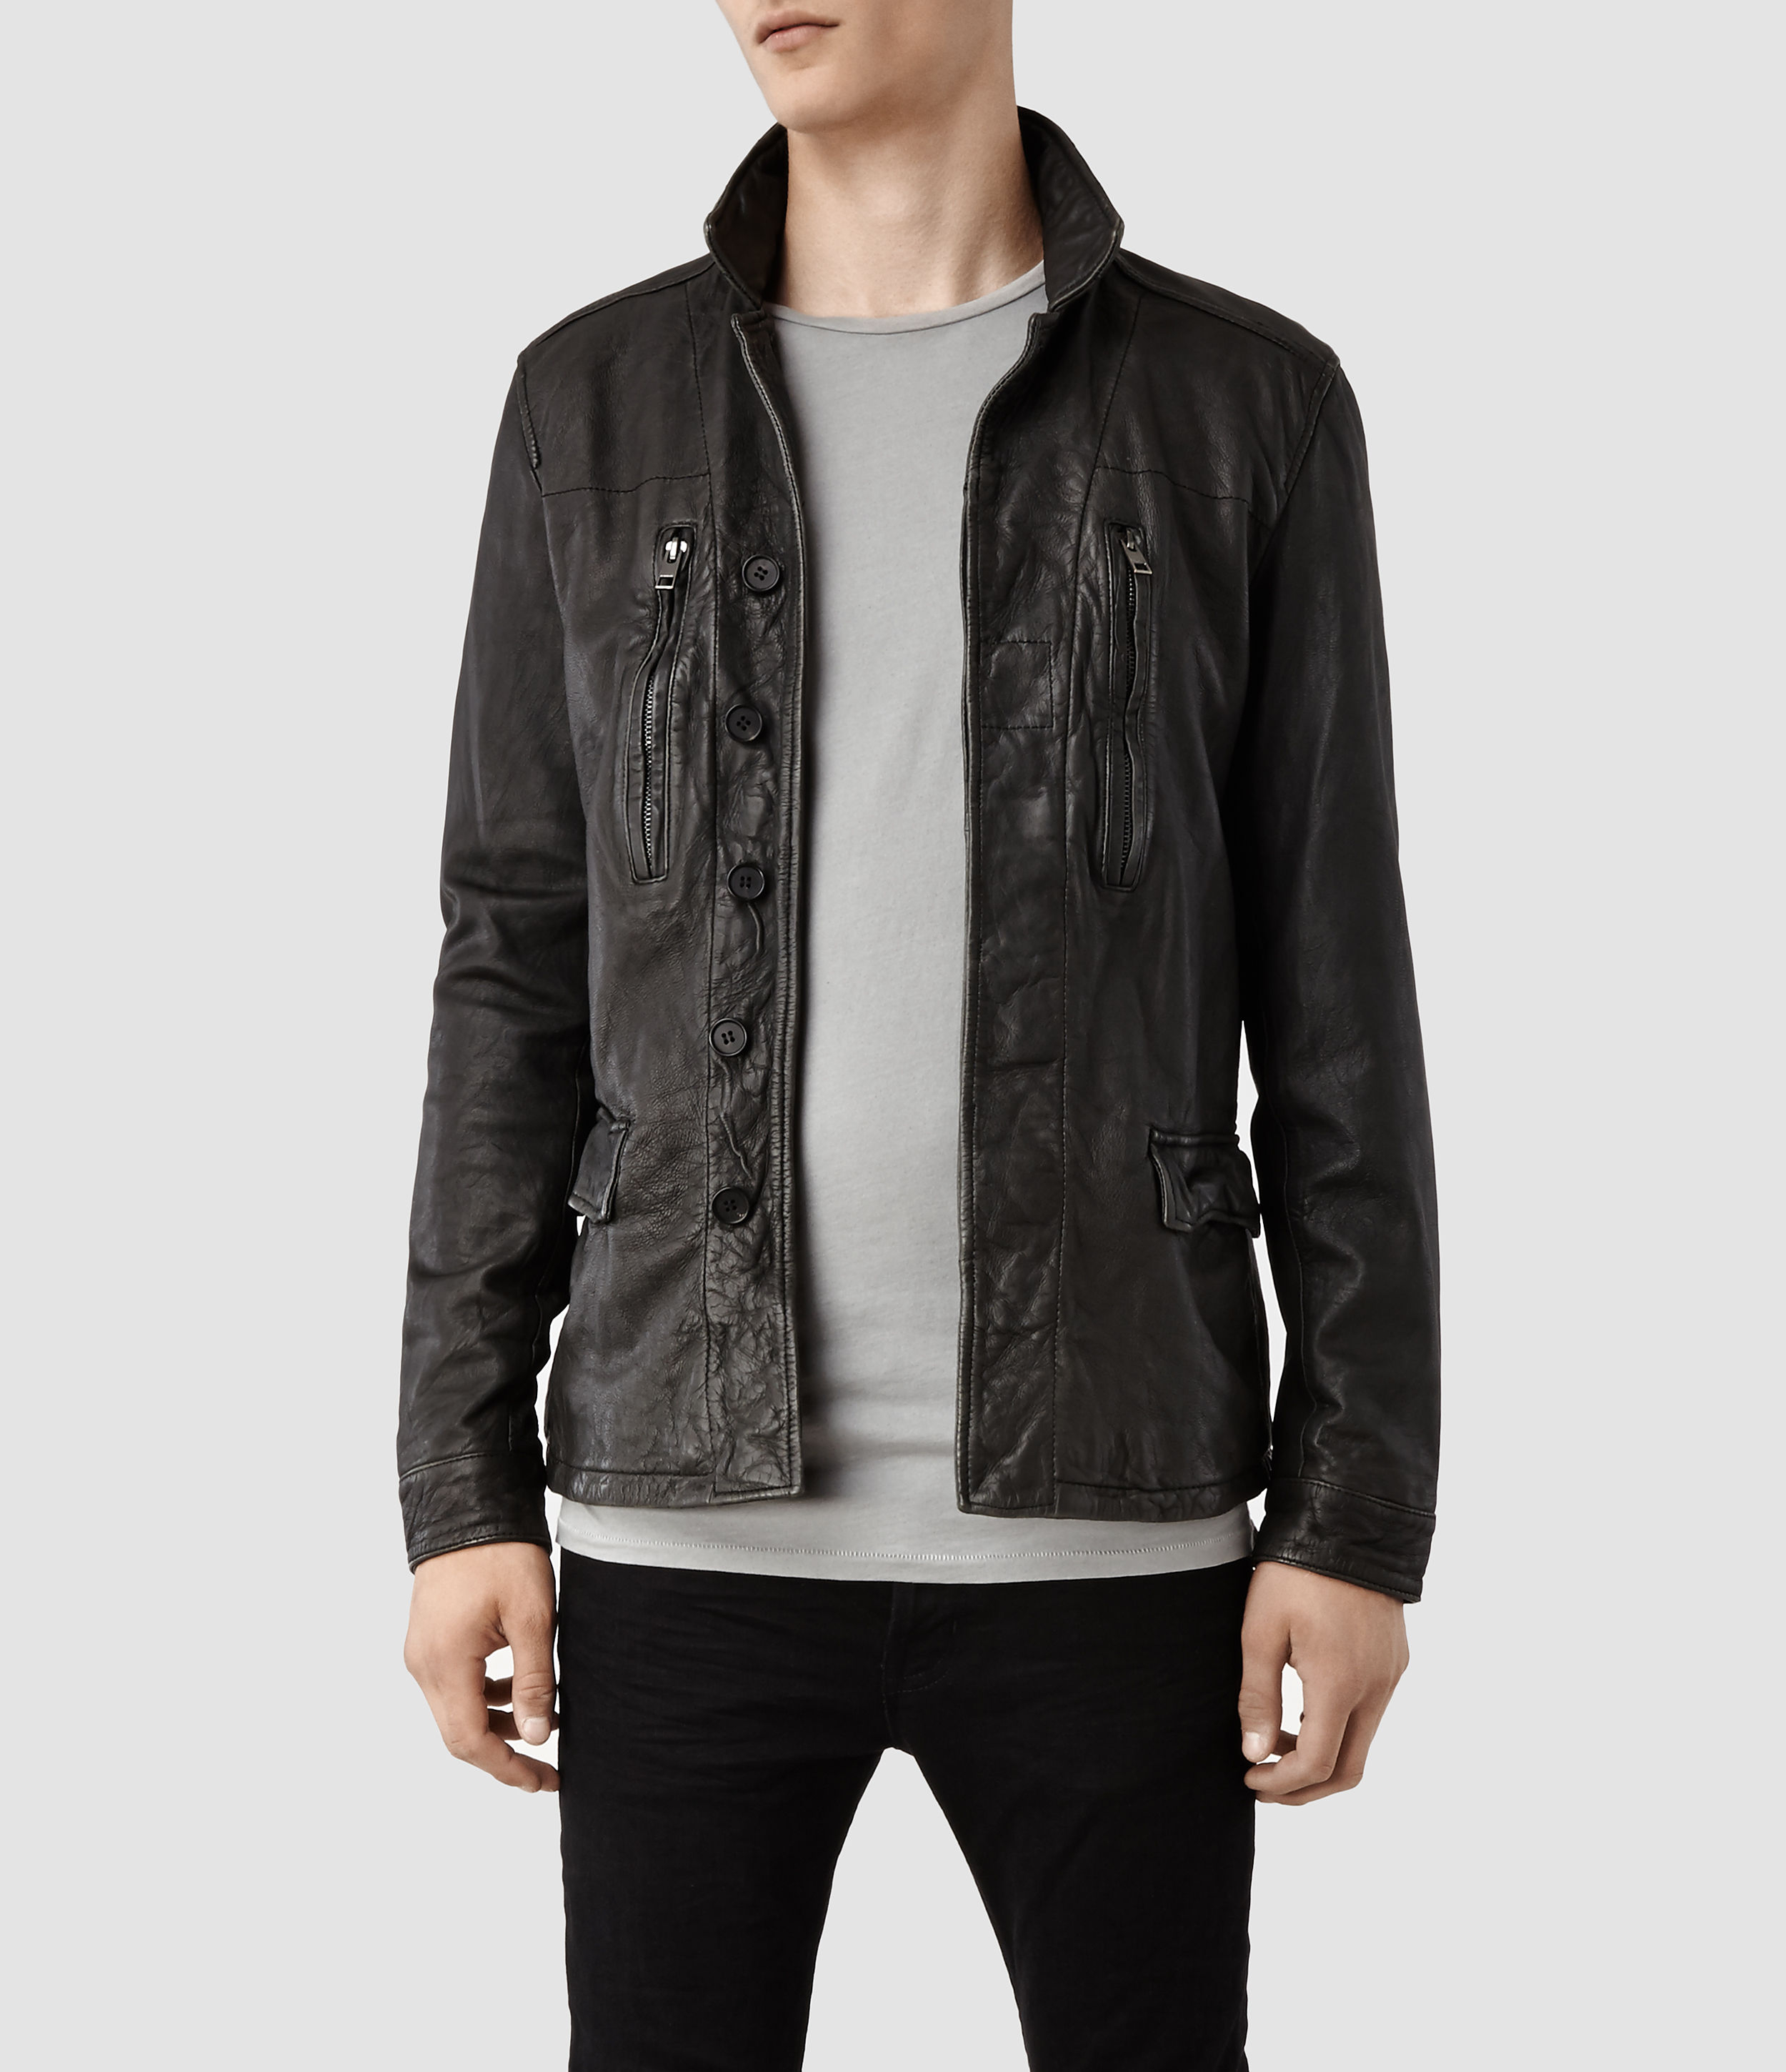 Leather jacket xs - Gallery